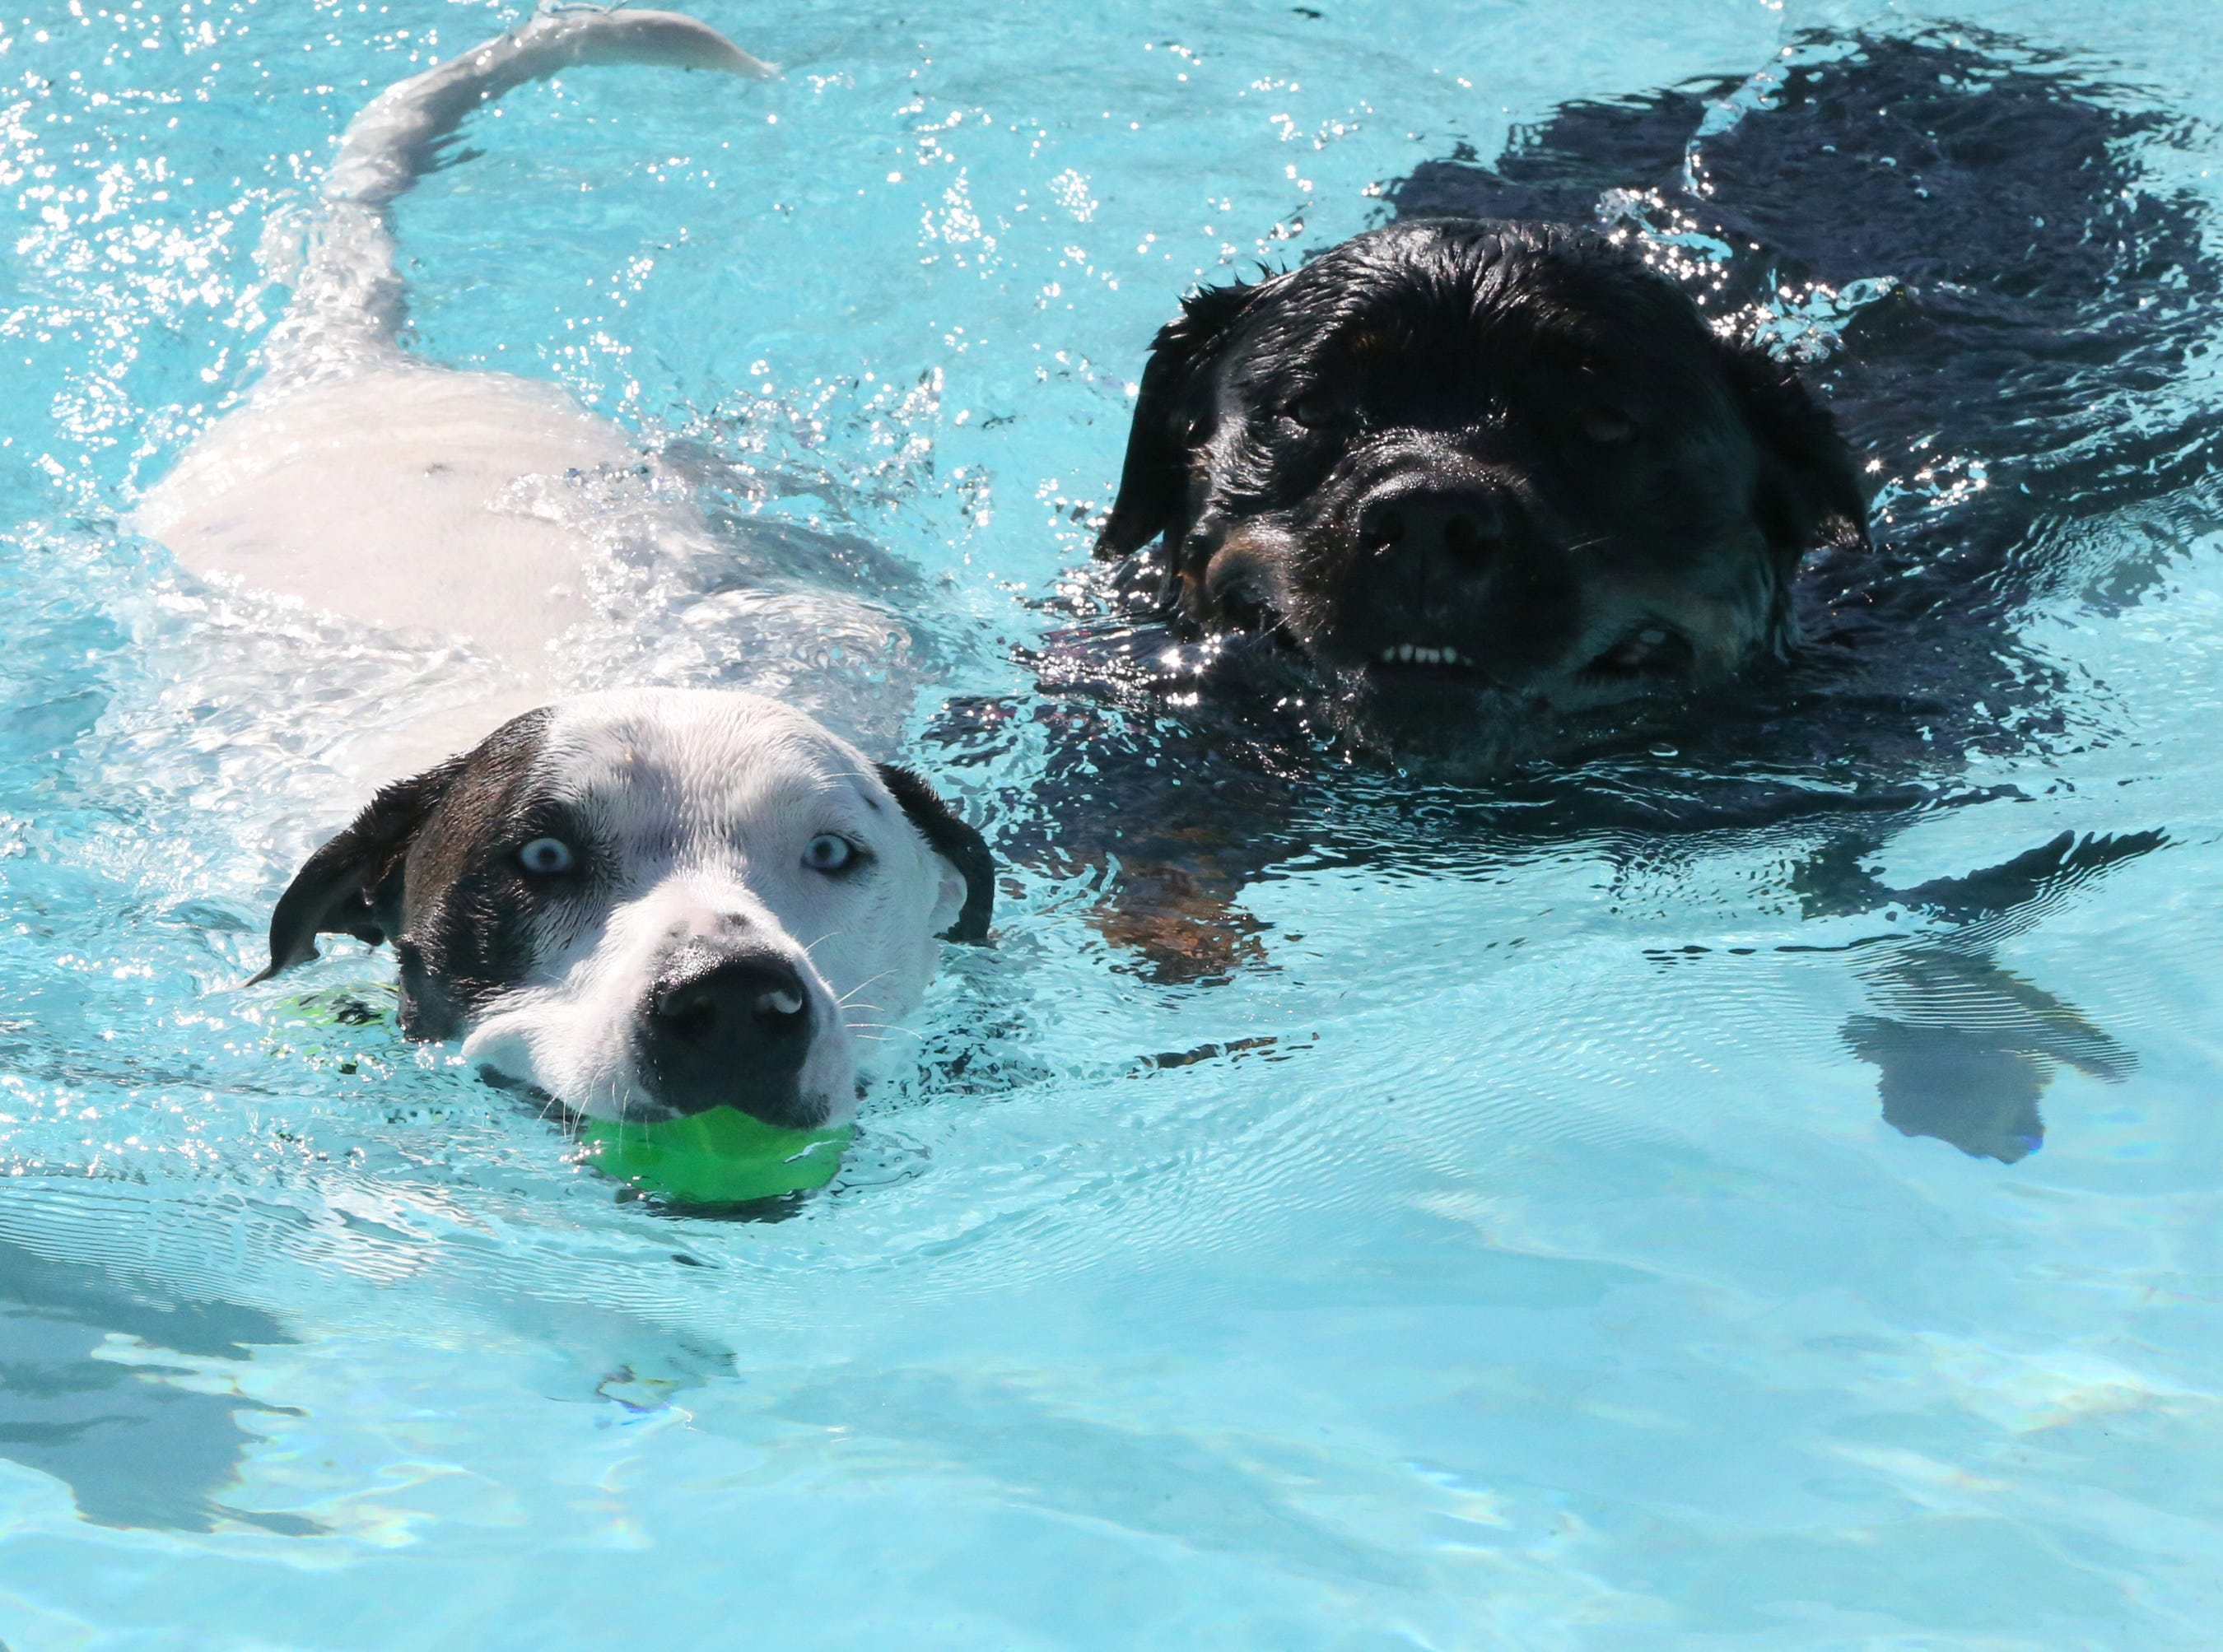 Dogs enjoying a dip in the pool Sunday at Nations Tobin Aquatic Center.